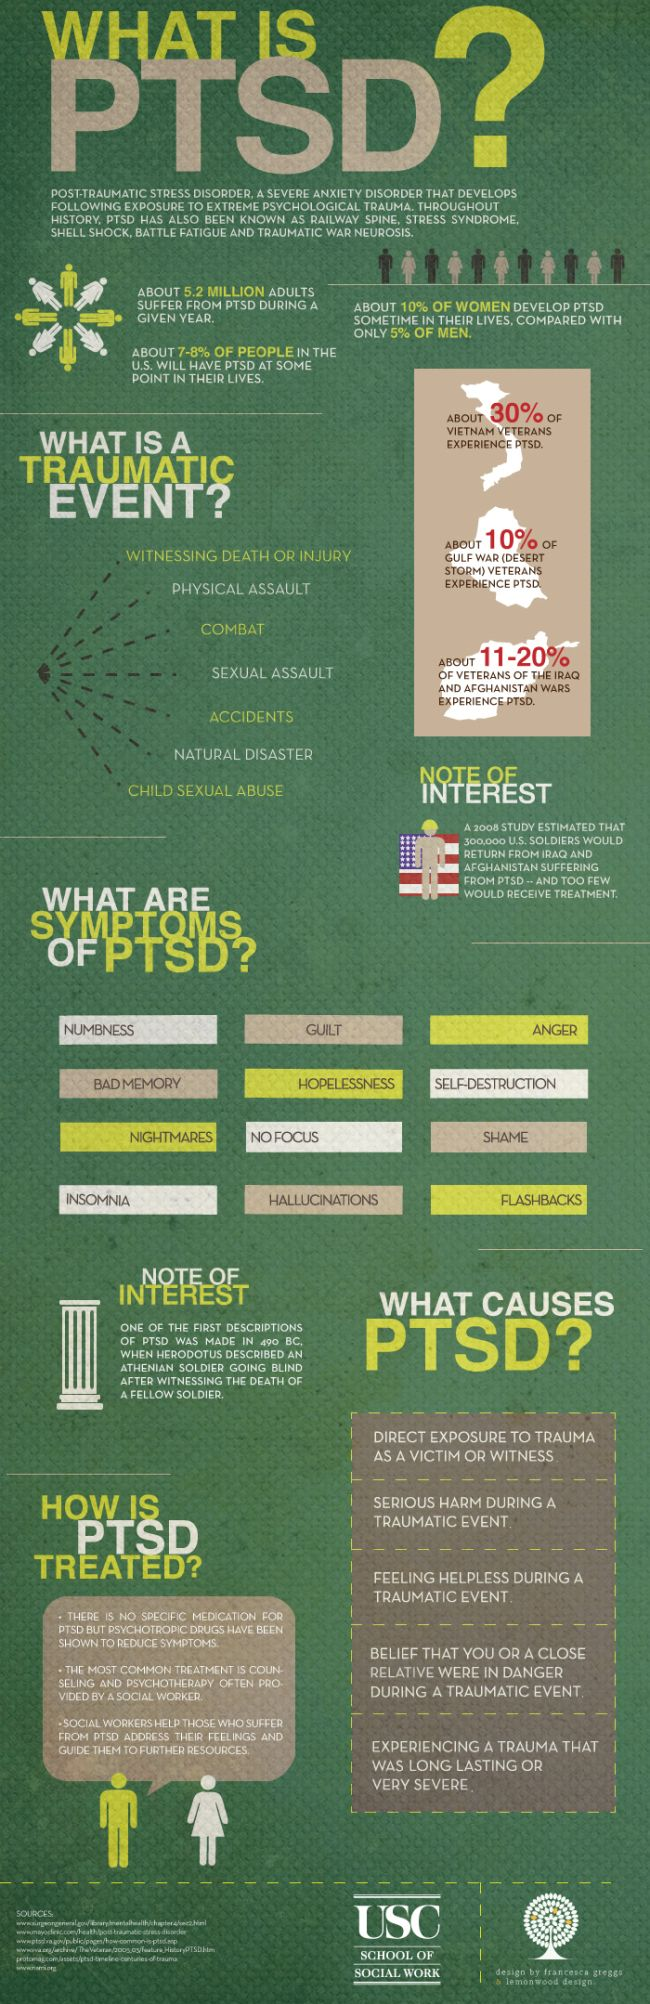 best images about chronic post traumatic stress disorder on 17 best images about chronic post traumatic stress disorder safe place stress disorders and disorders